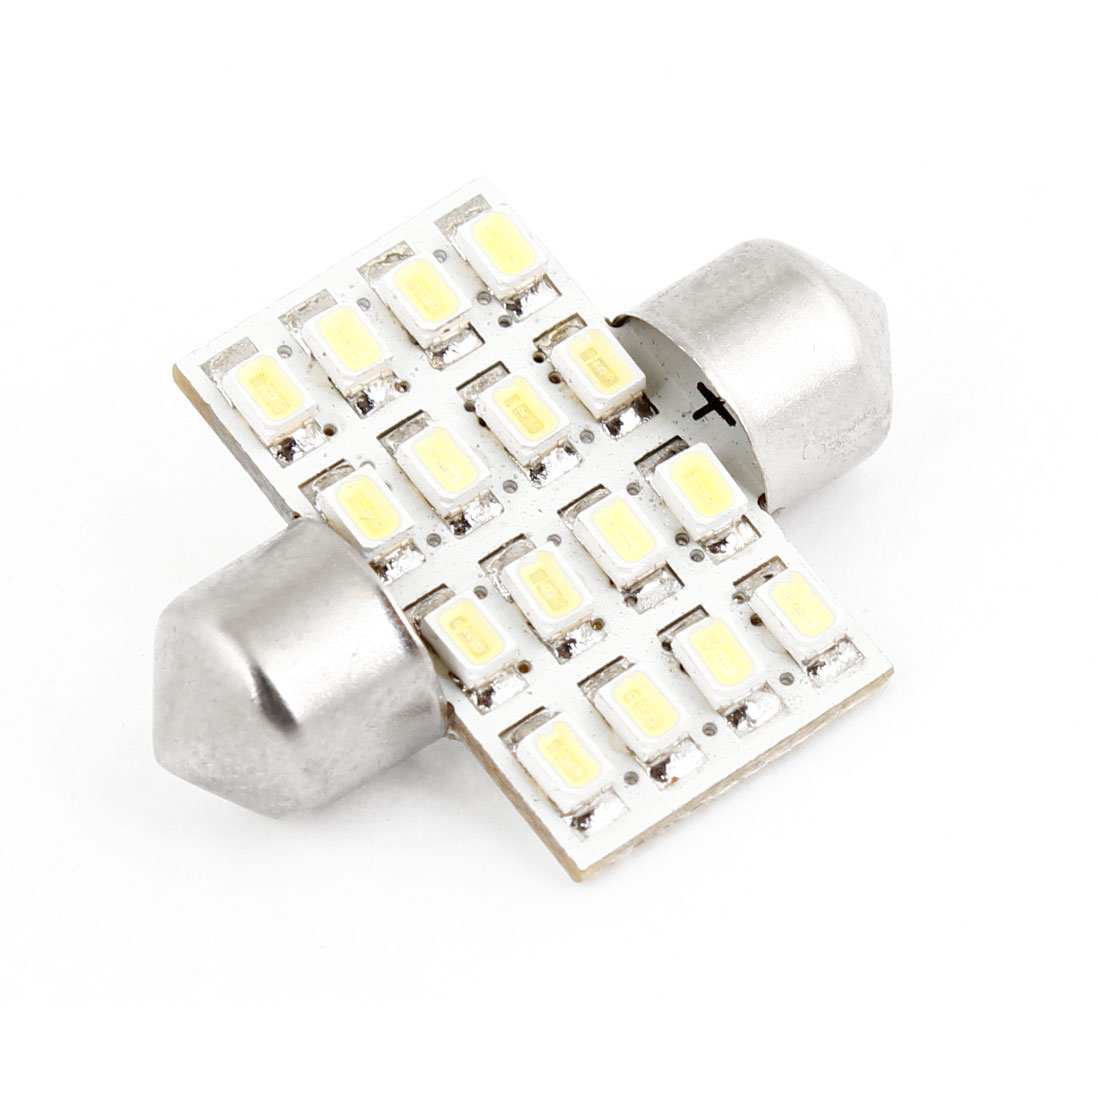 31mm Festoon 16 White 1206 SMD LED Interior Lamp for Auto Car